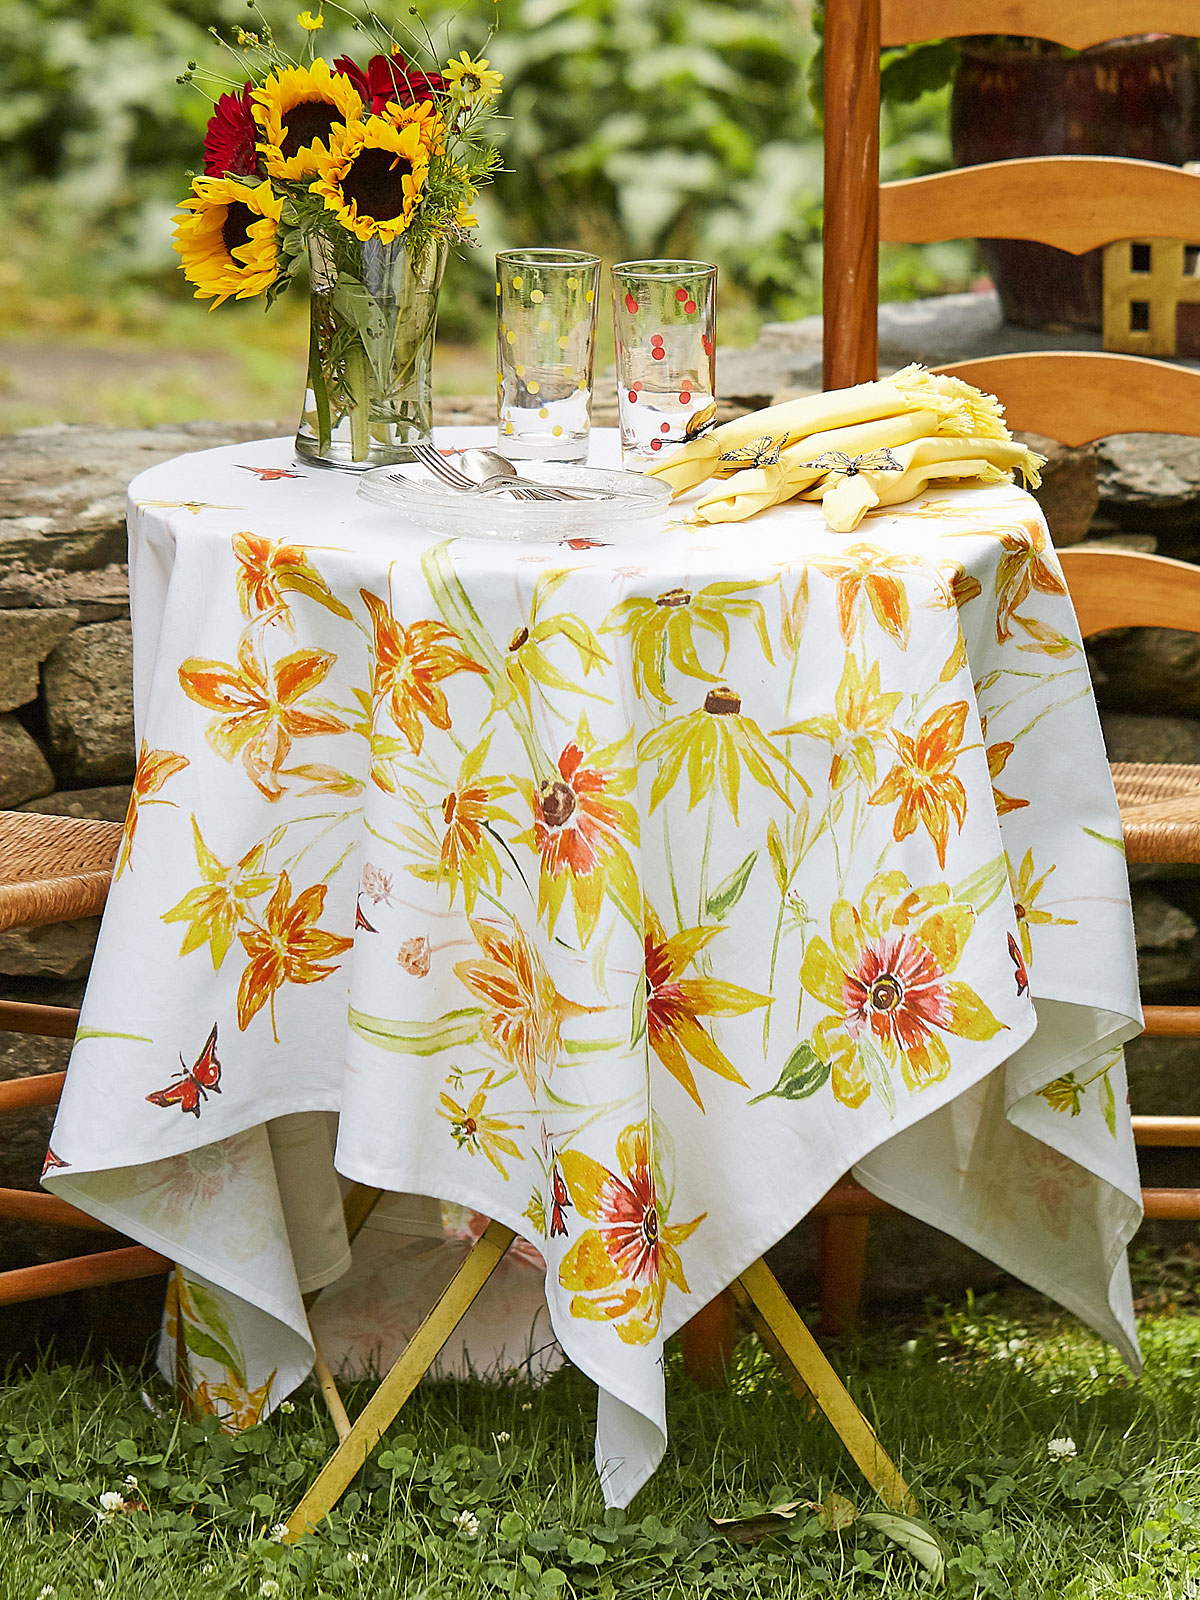 Black Eyed Susan Tablecloth